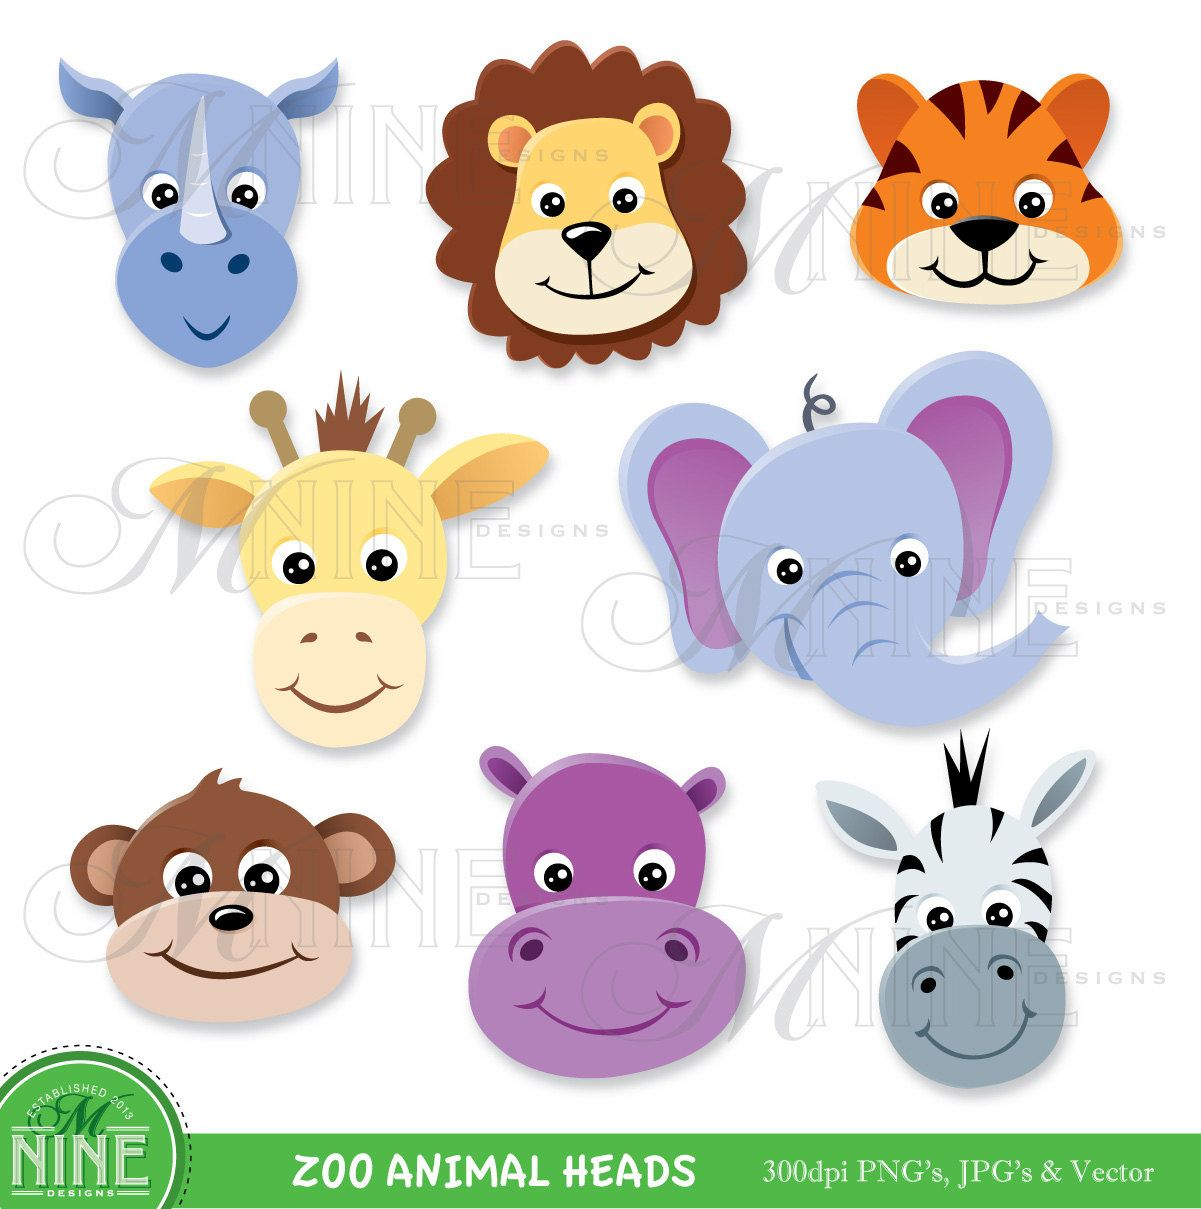 small resolution of zoo animal heads clipart digital clip art instant by mninedesigns 4 99